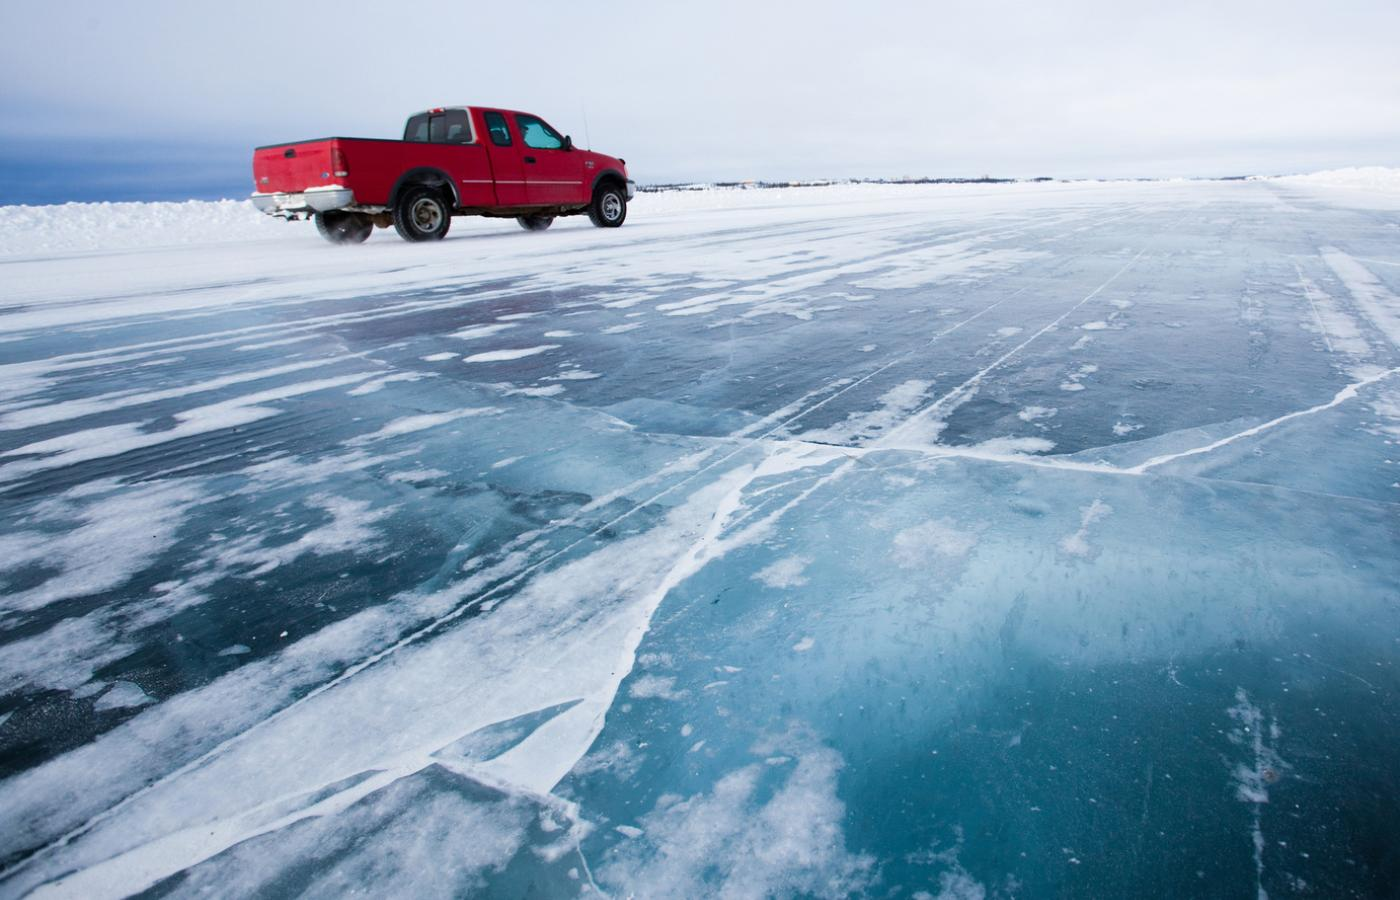 The Mackenzie River becomes an ice road in the winter